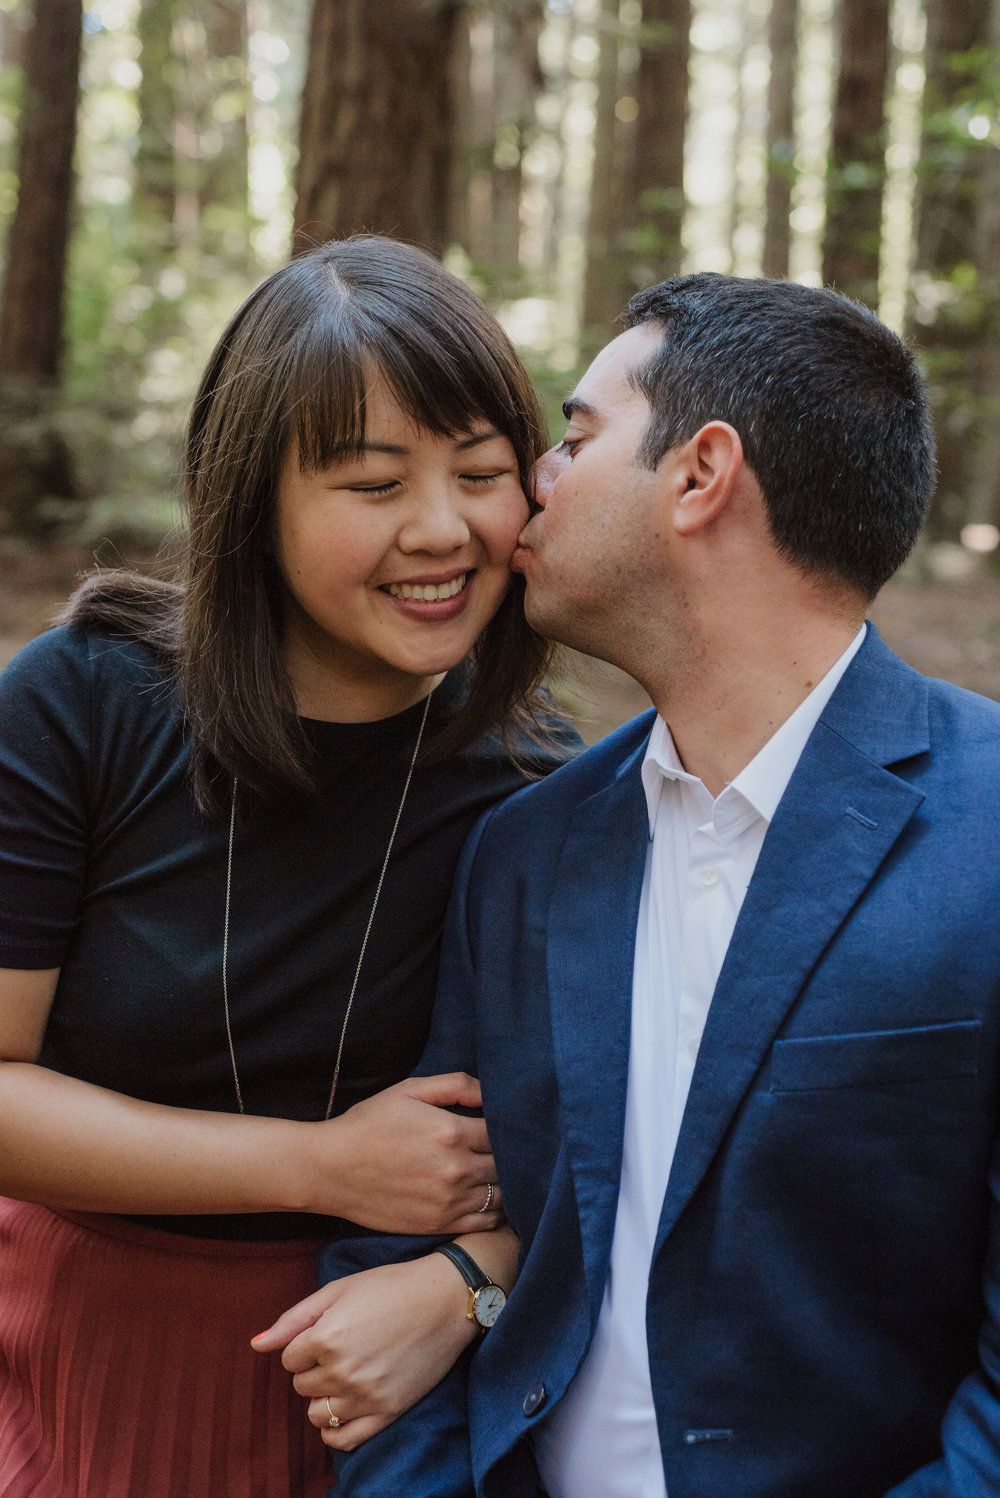 oakland-redwood-engagement-session-photographer-vivianchen-040.jpg